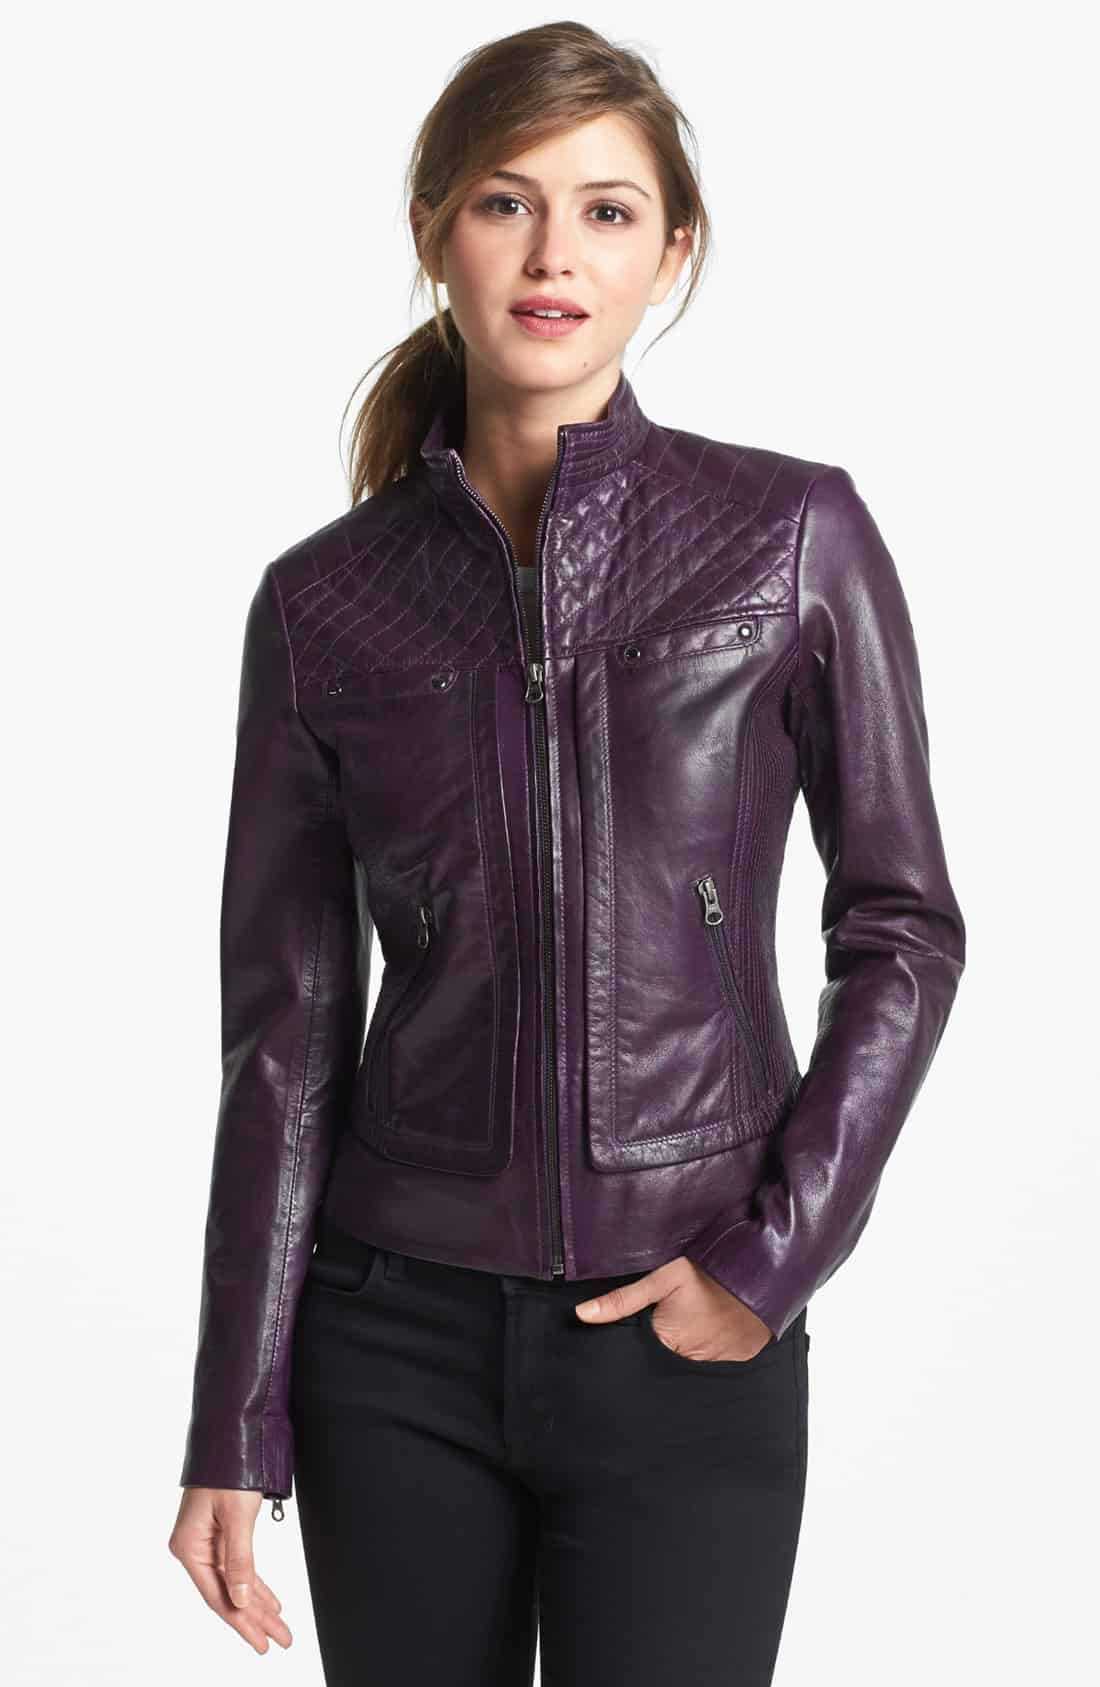 Women S Leather Jackets A8KBM4